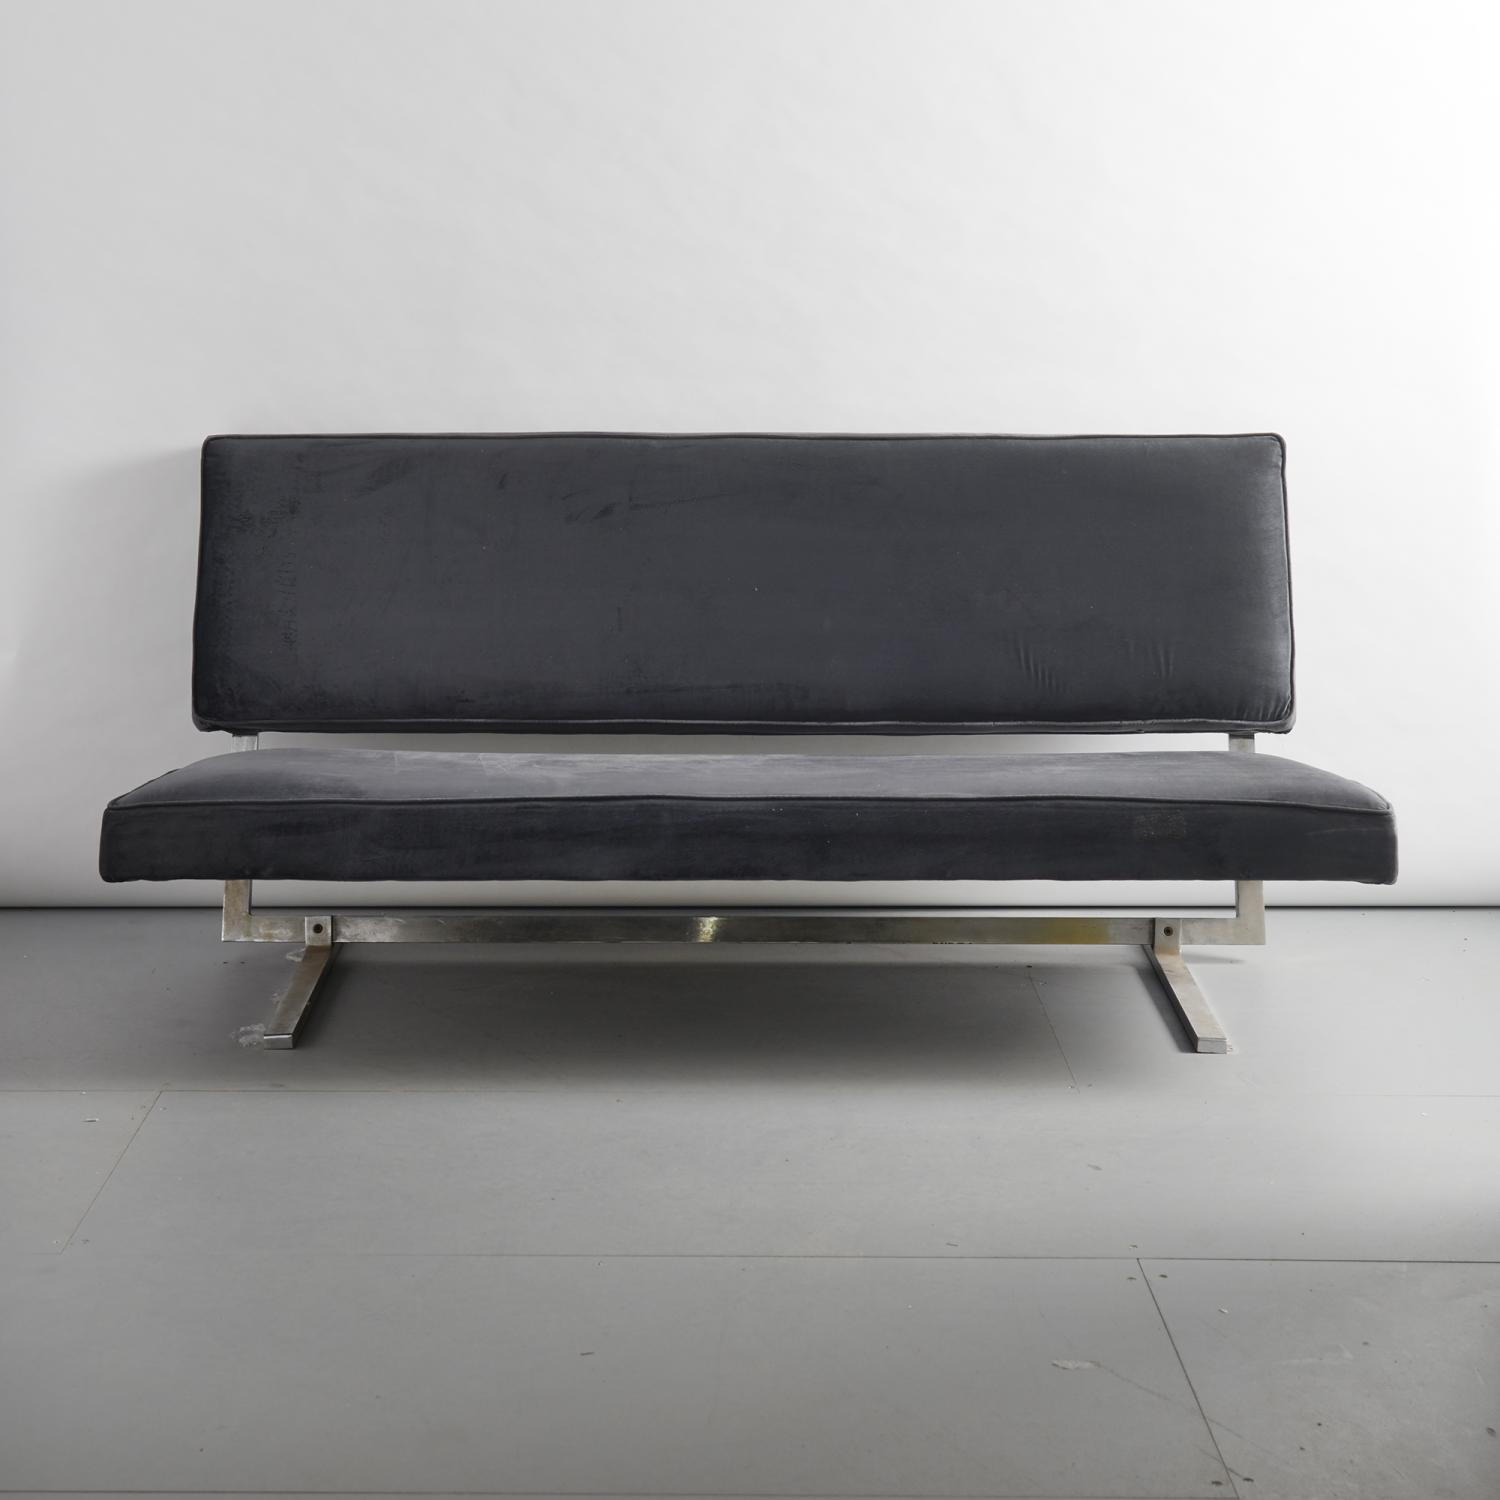 Sofa In The Style Of Florence Knoll ZoomFlorence Knoll Sofa Dimensions   creditrestore us. Florence Knoll Sofa Dimensions. Home Design Ideas